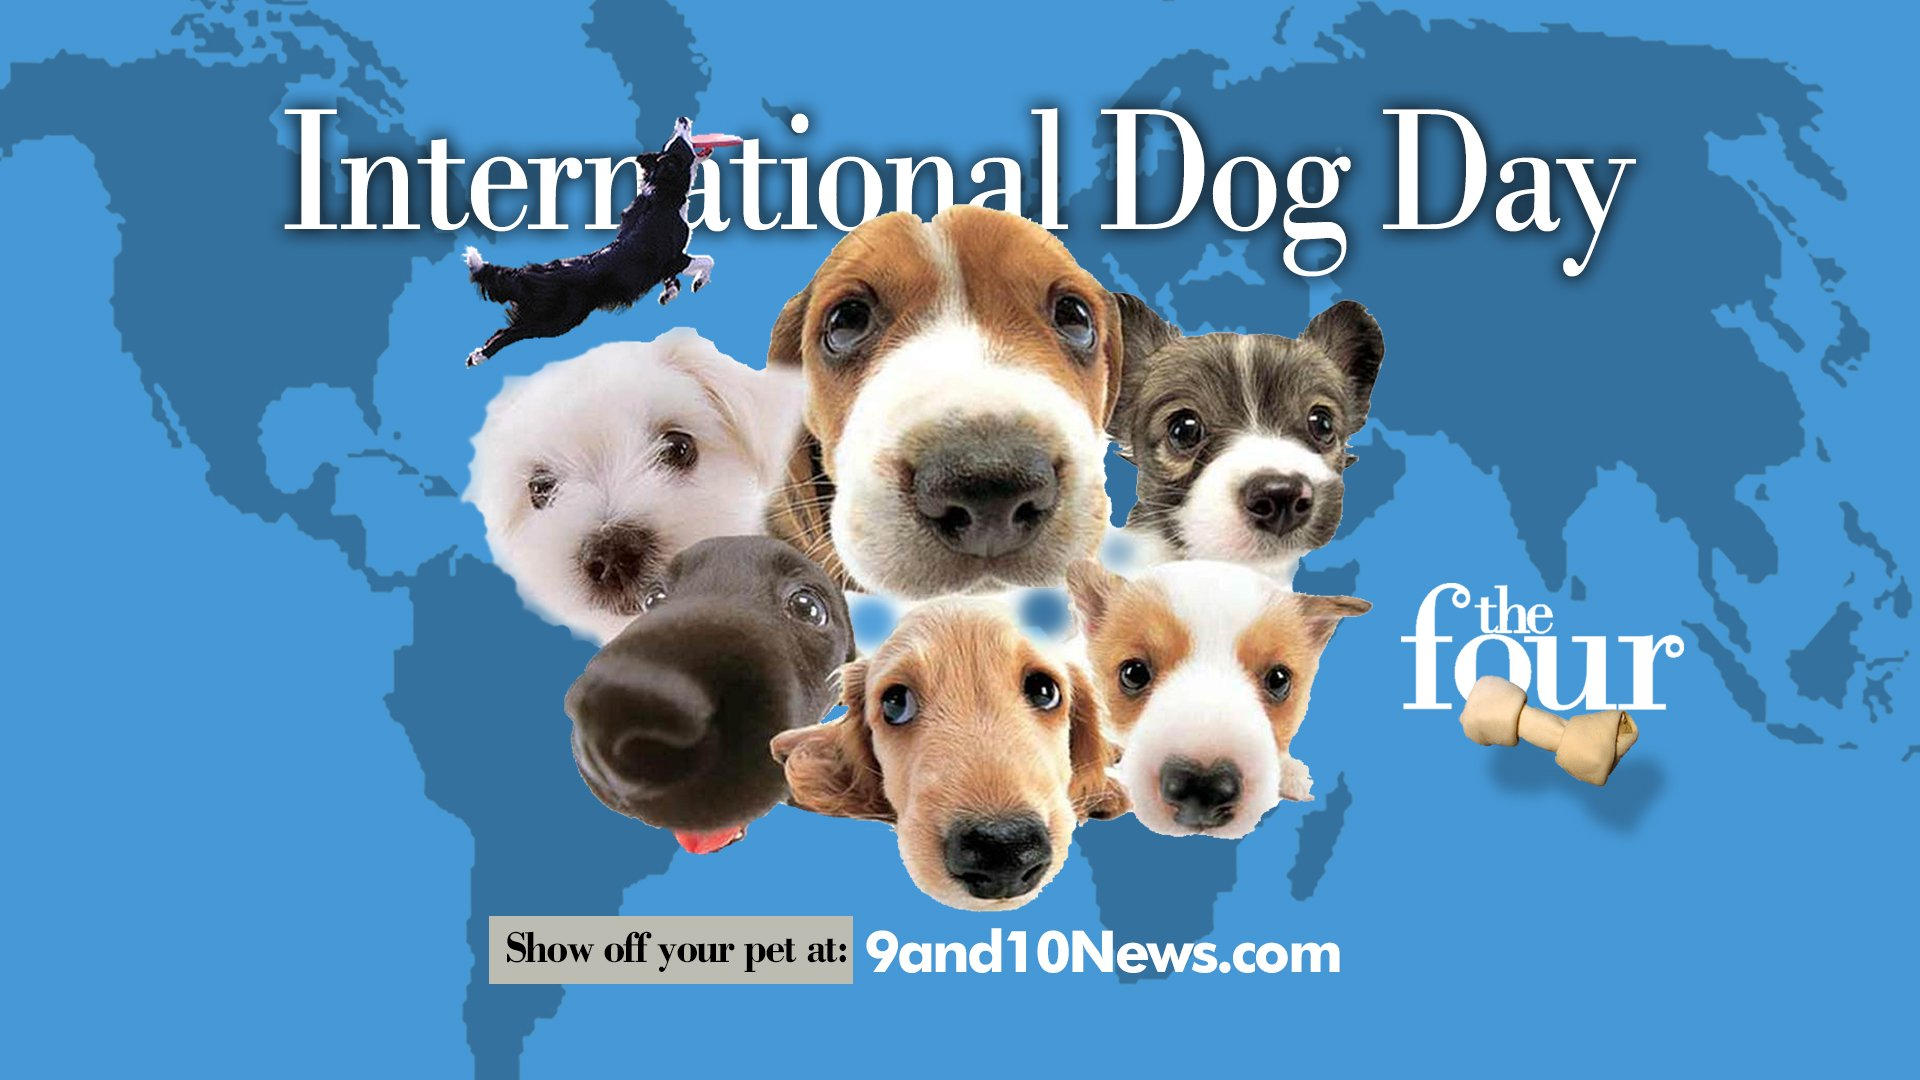 Submit Your Dog Pictures for International Dog Day! - 9 & 10